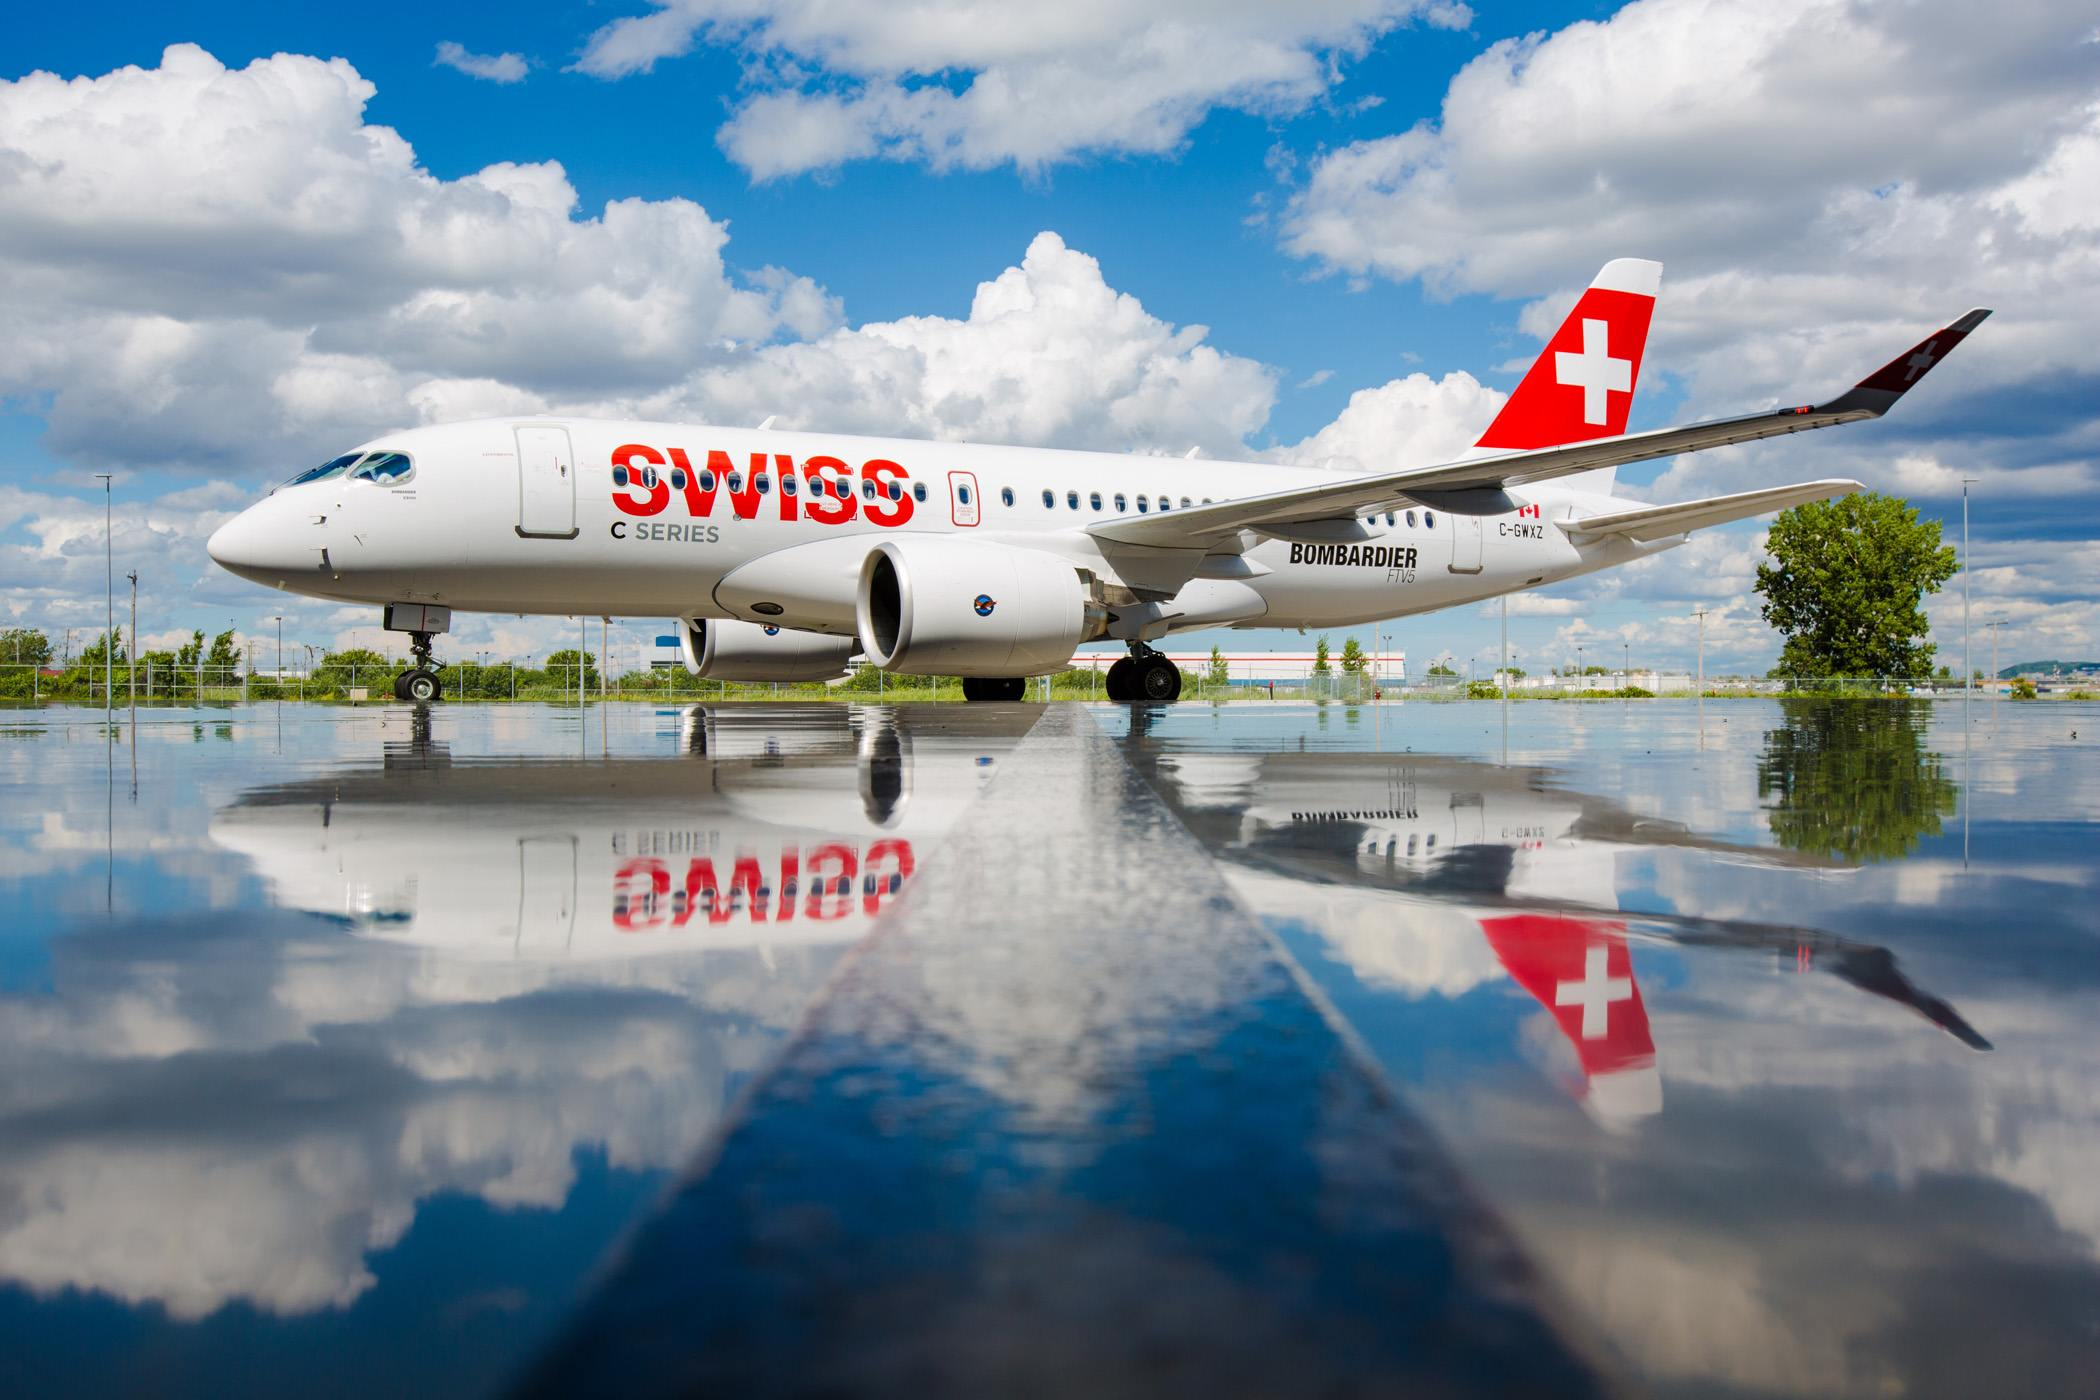 L'avion C Series aux couleurs de SWISS